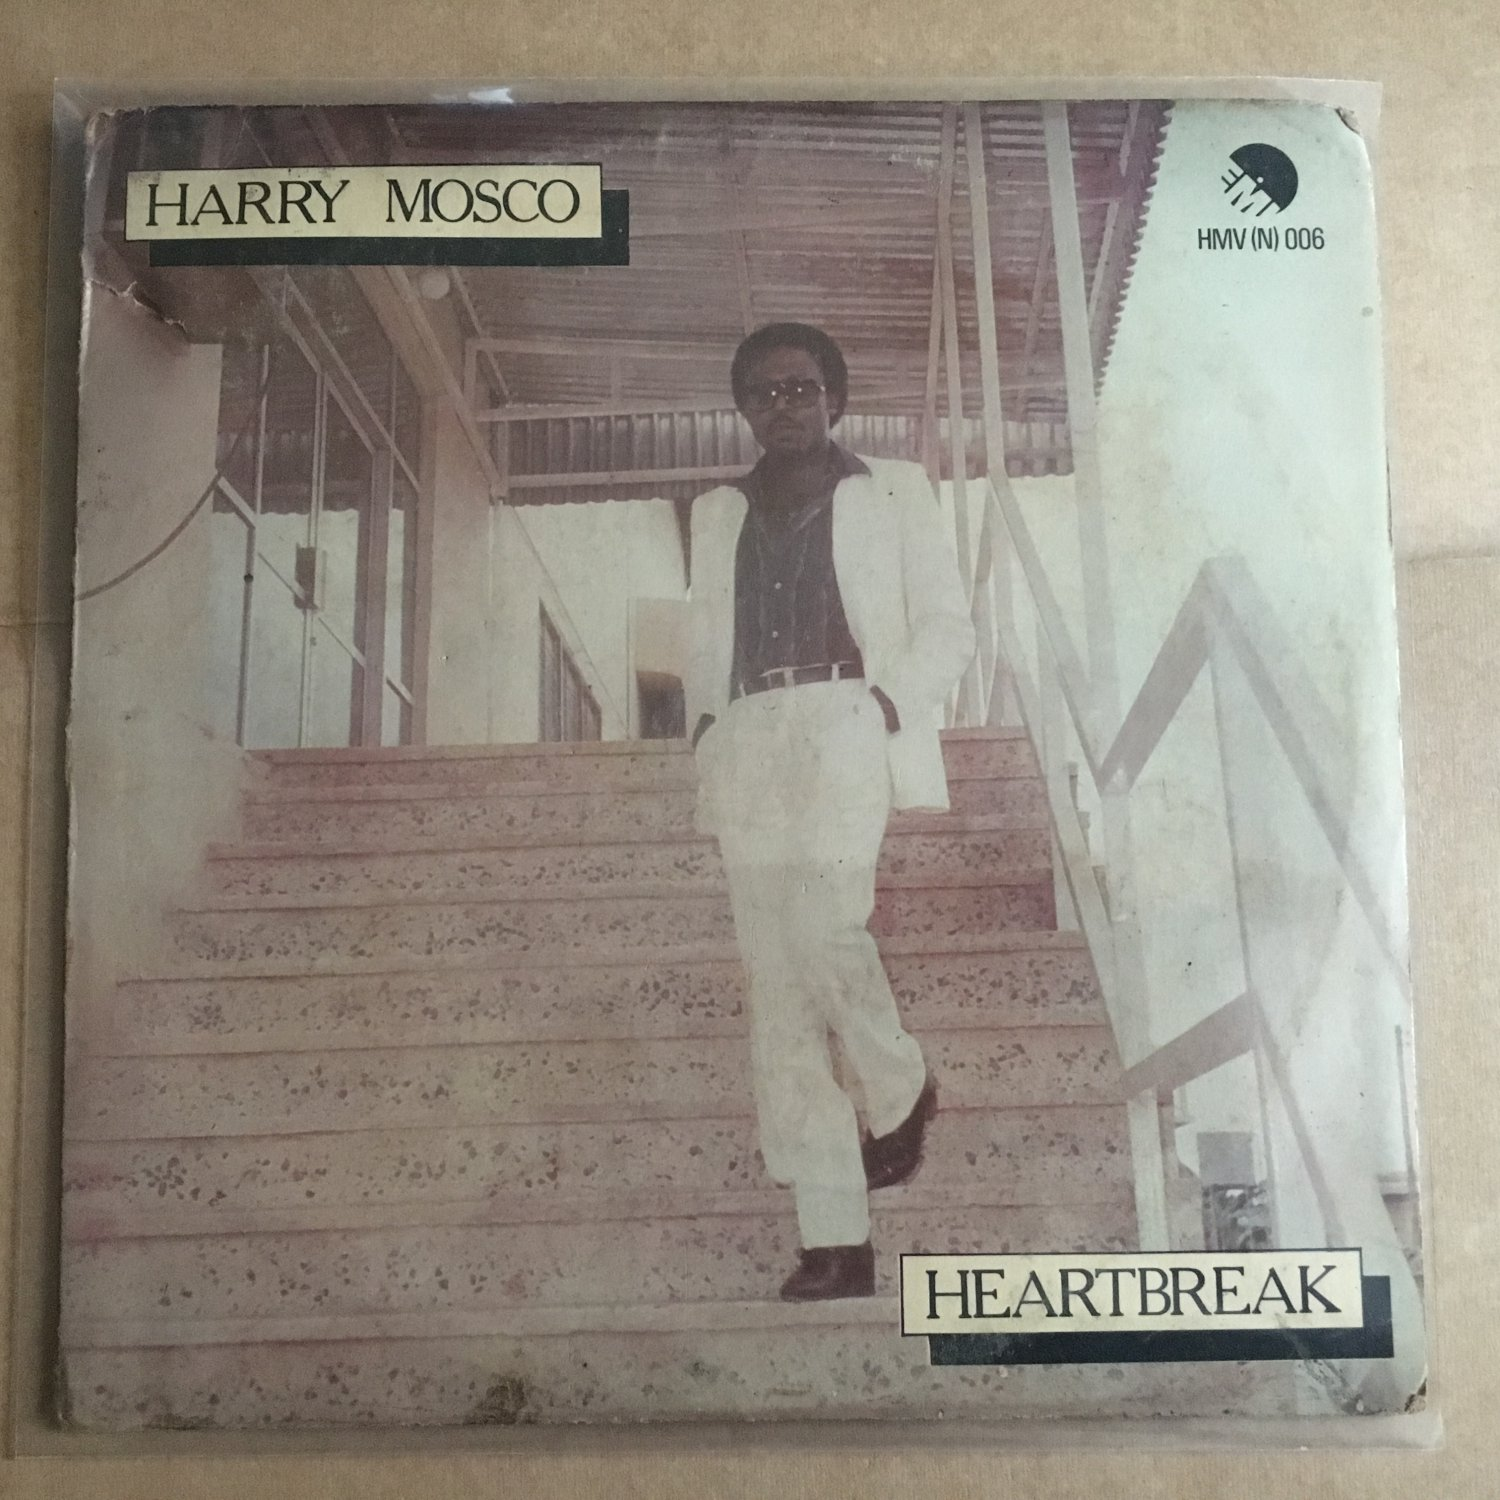 HARRY MOSCO LP heartbreak NIGERIA AFRO BOOGIE FUNK FUNKEES mp3 LISTEN